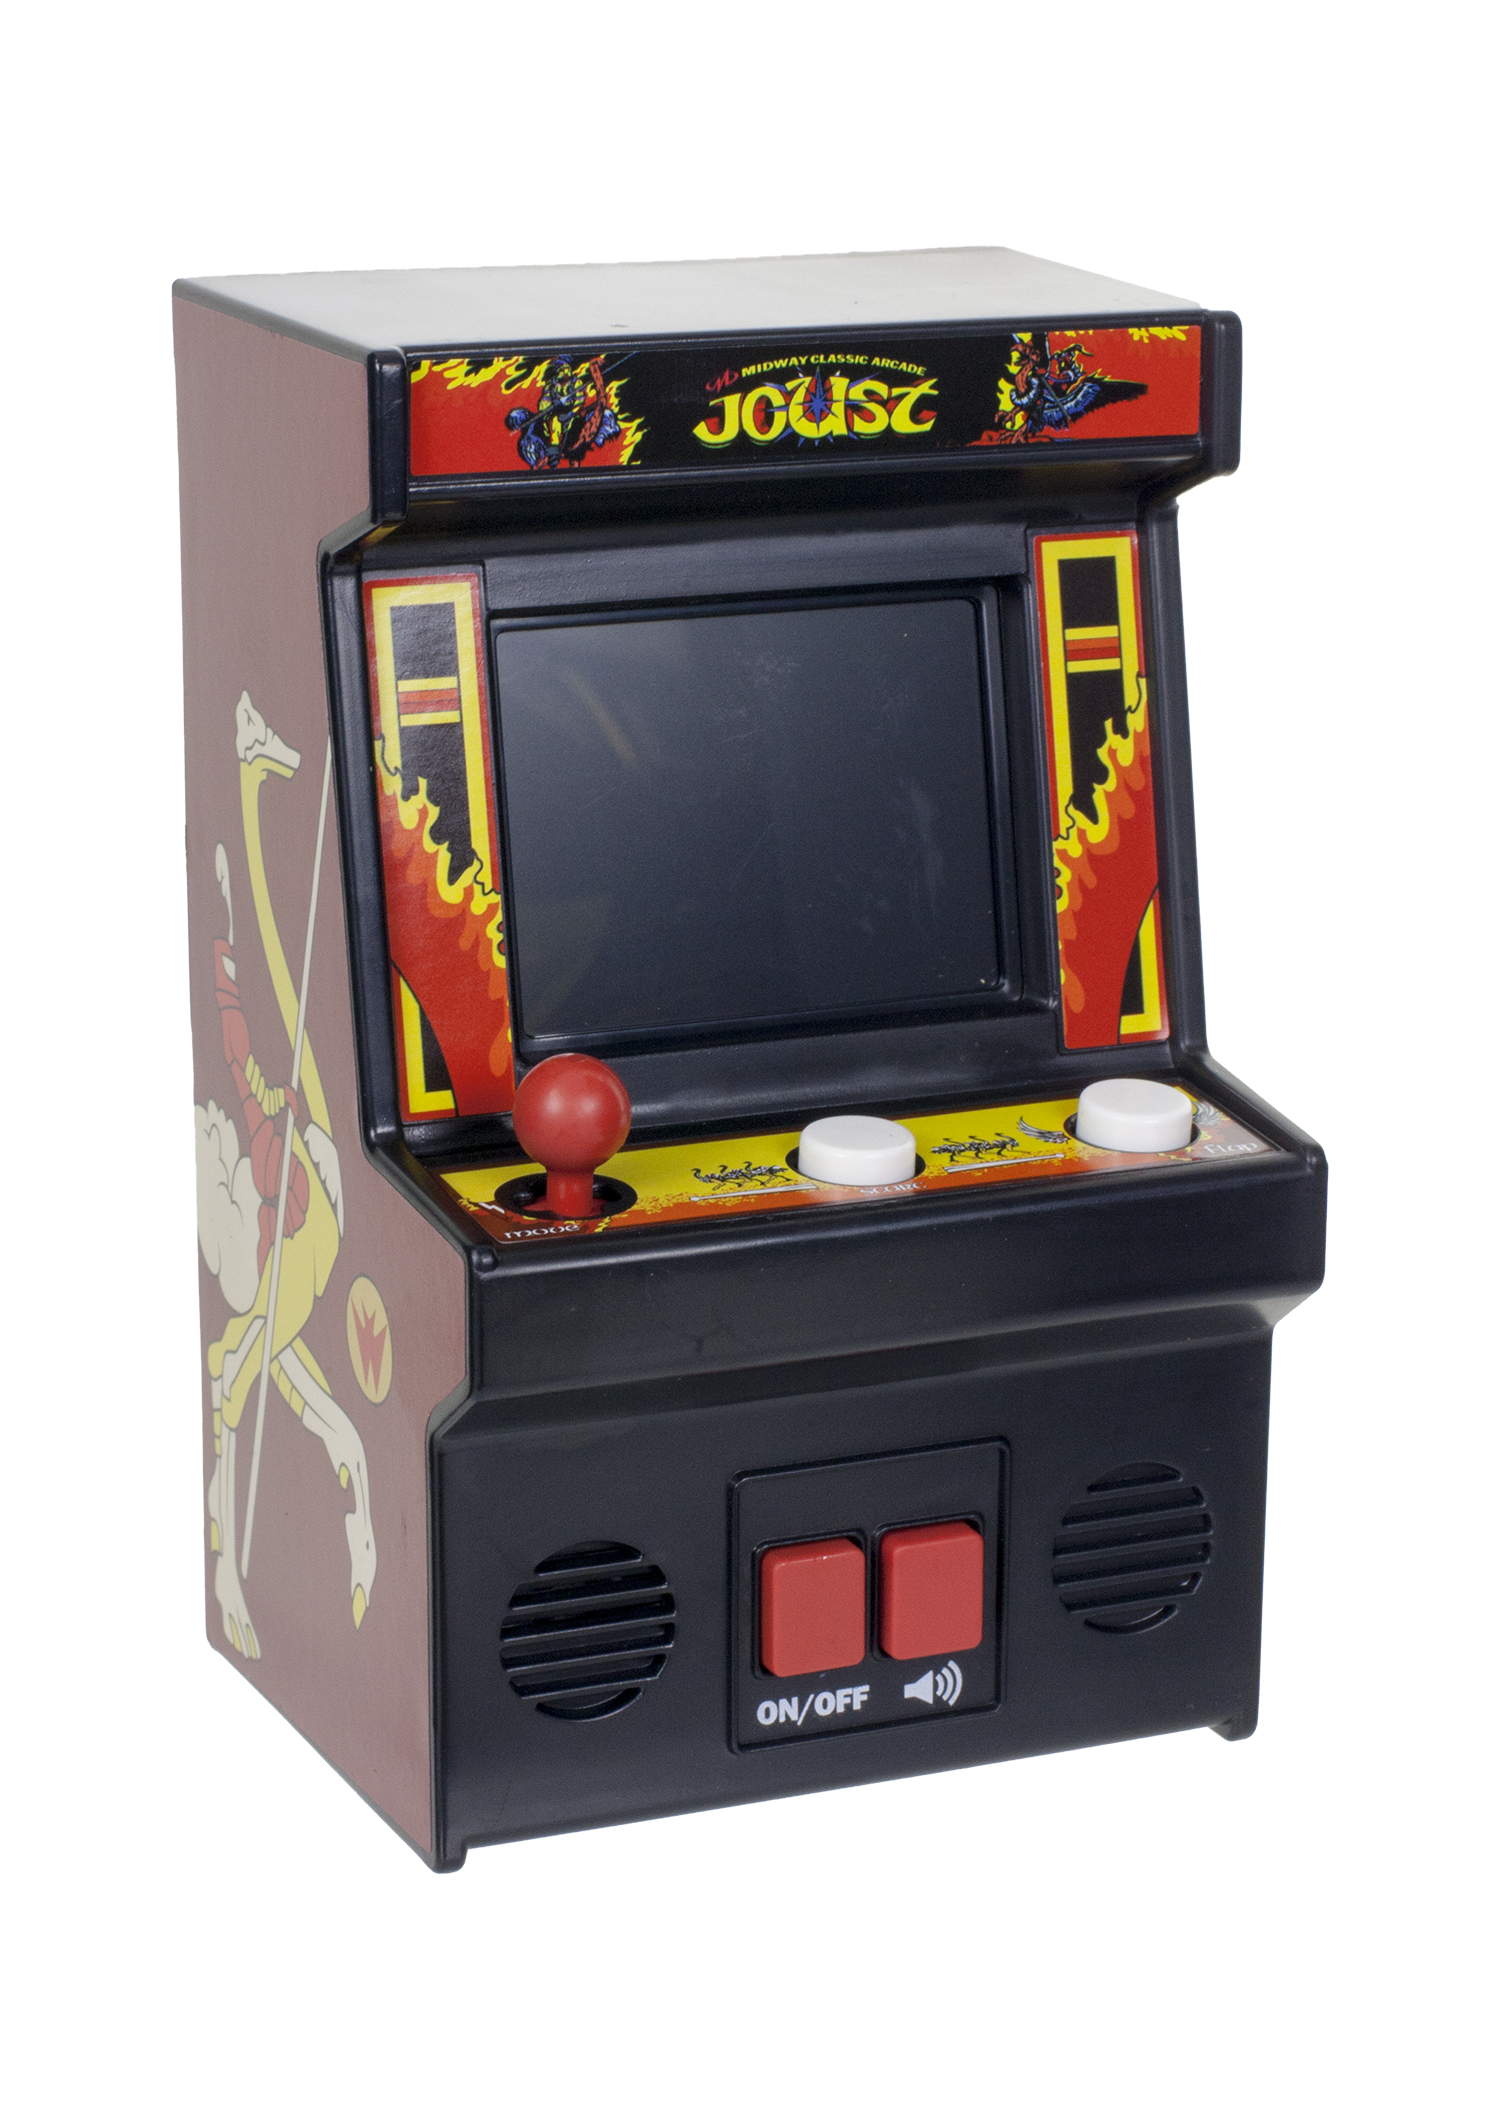 Details about New! JOUST Mini Arcade Game Classic Gaming Retro Fun 80's  Classic Xmas Gift.